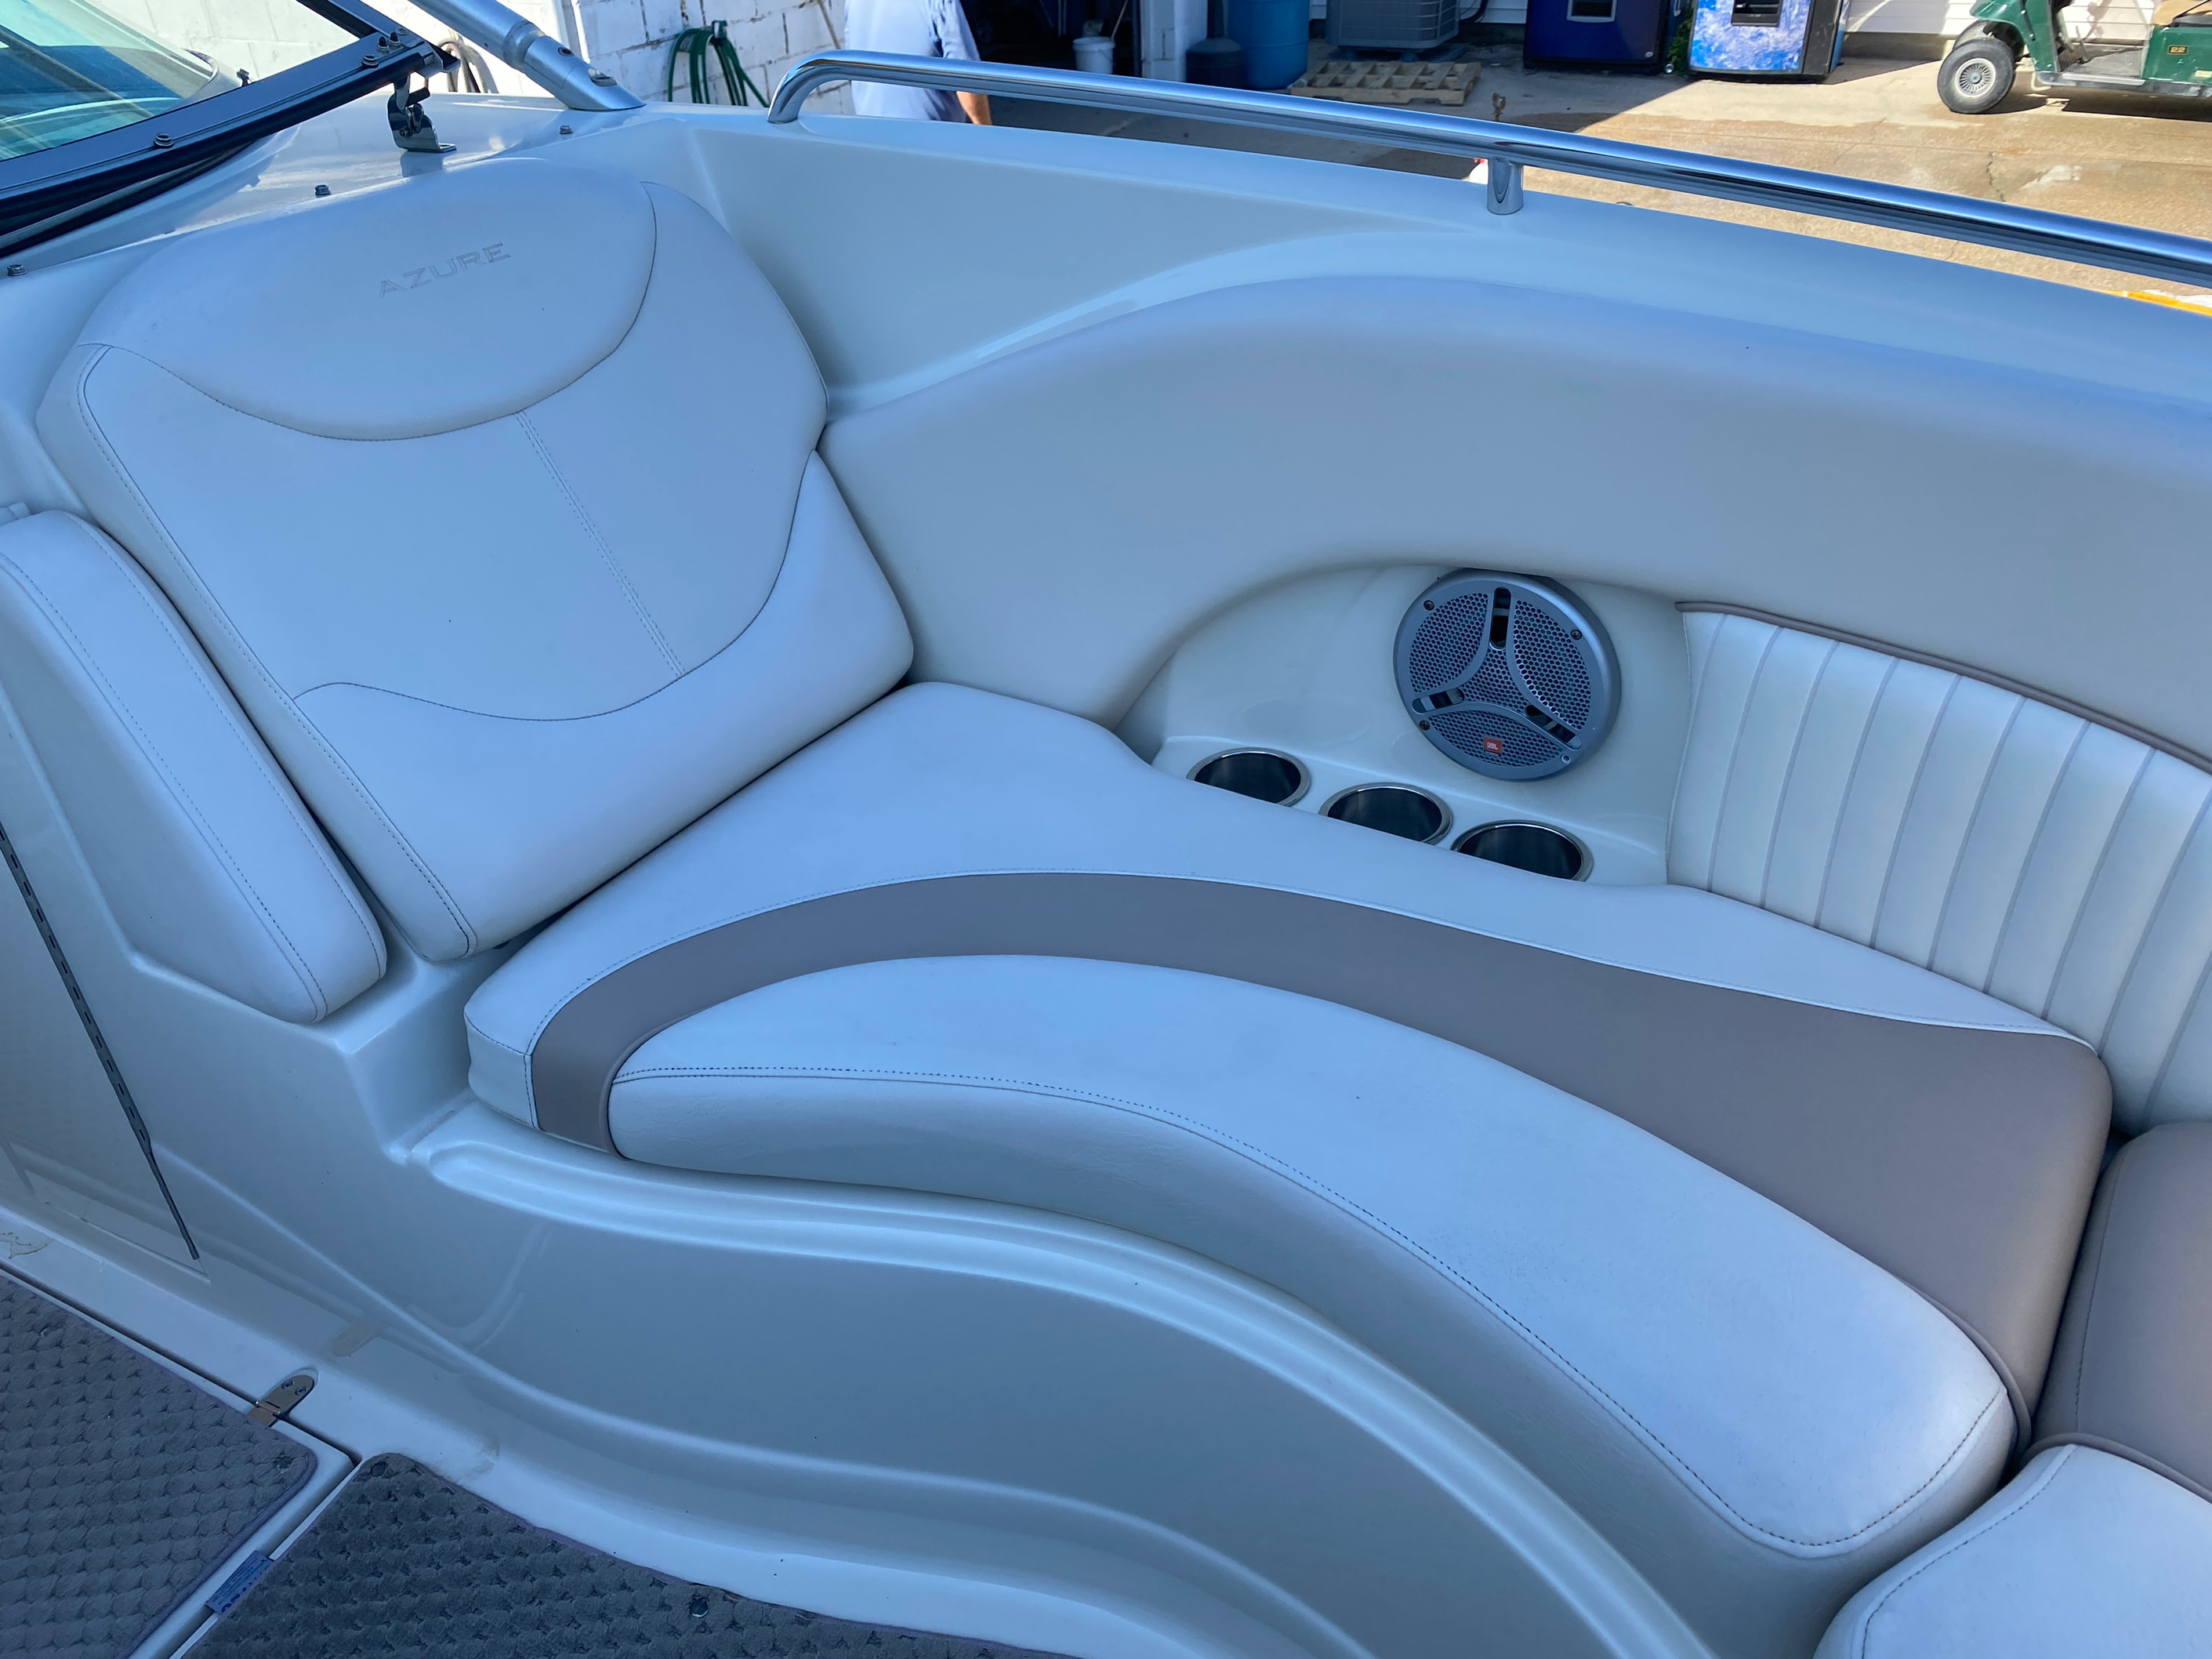 2008 Azure boat for sale, model of the boat is AZ 240 & Image # 6 of 18